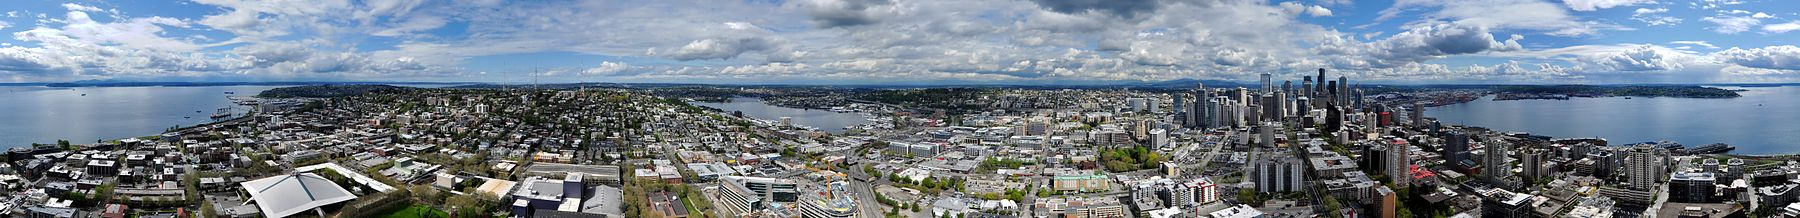 Panorama Seattlu ze Space Needle